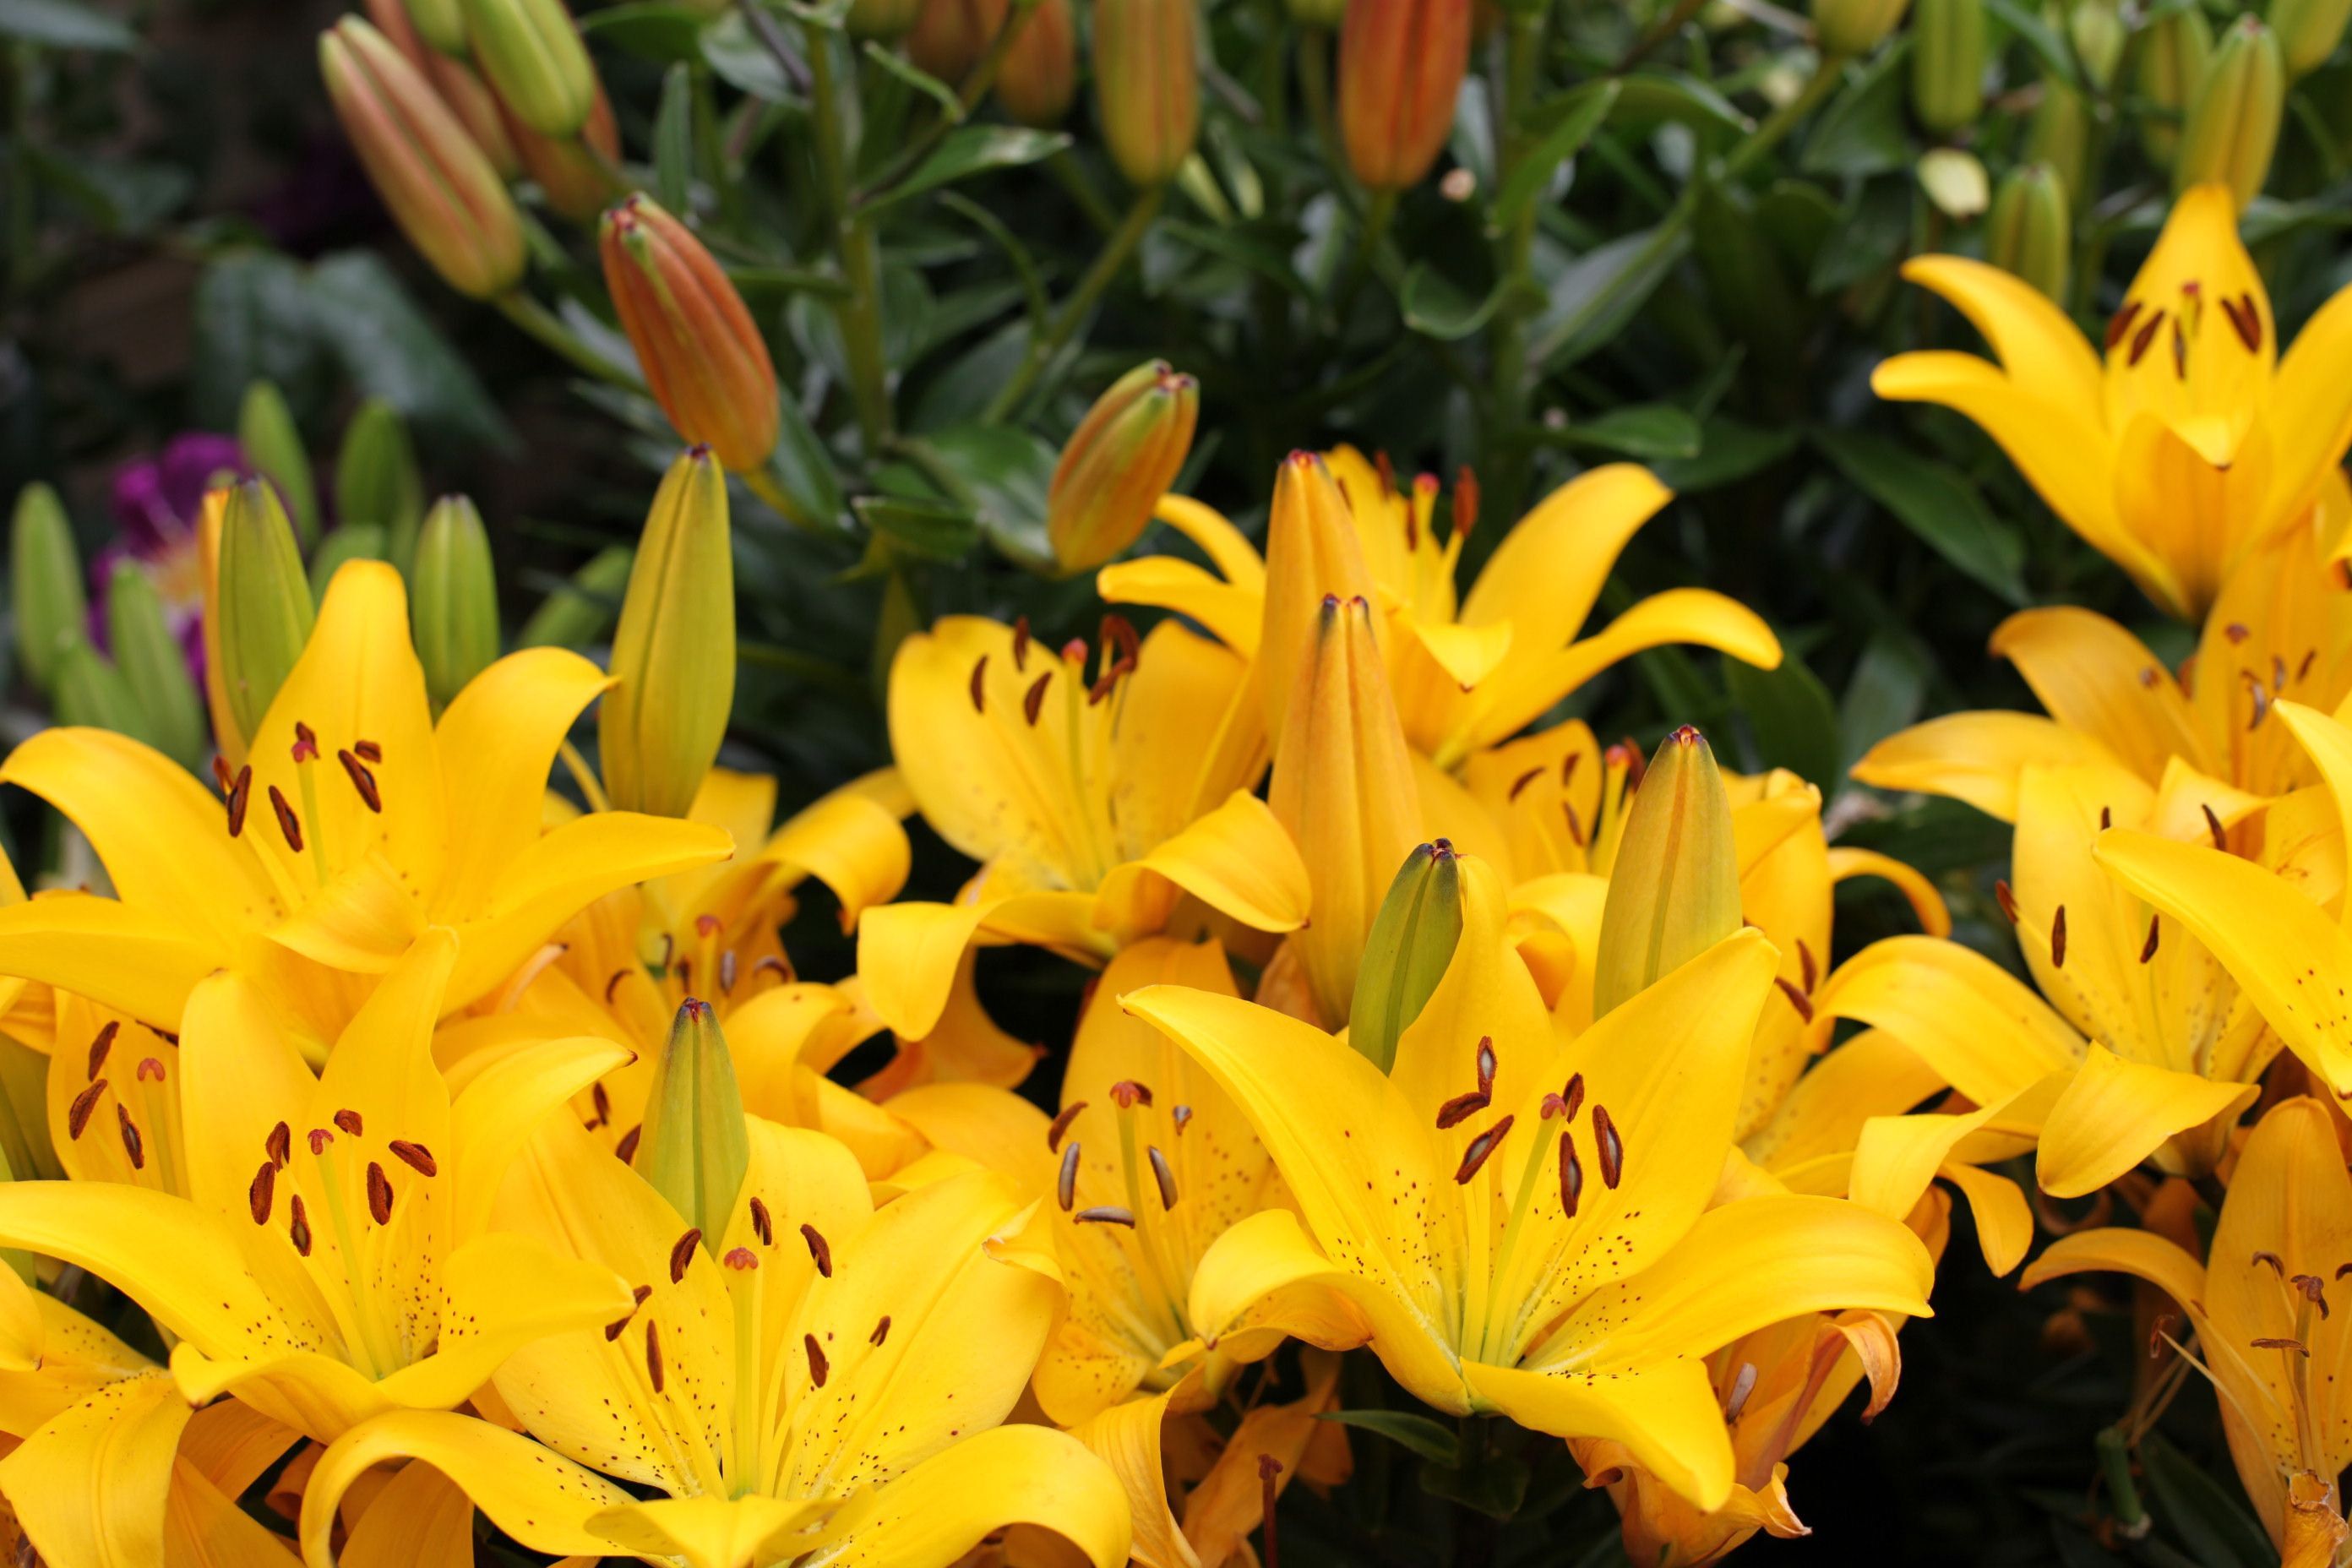 Lilium Golden Matrix Yellow Flowers From May To August Planting